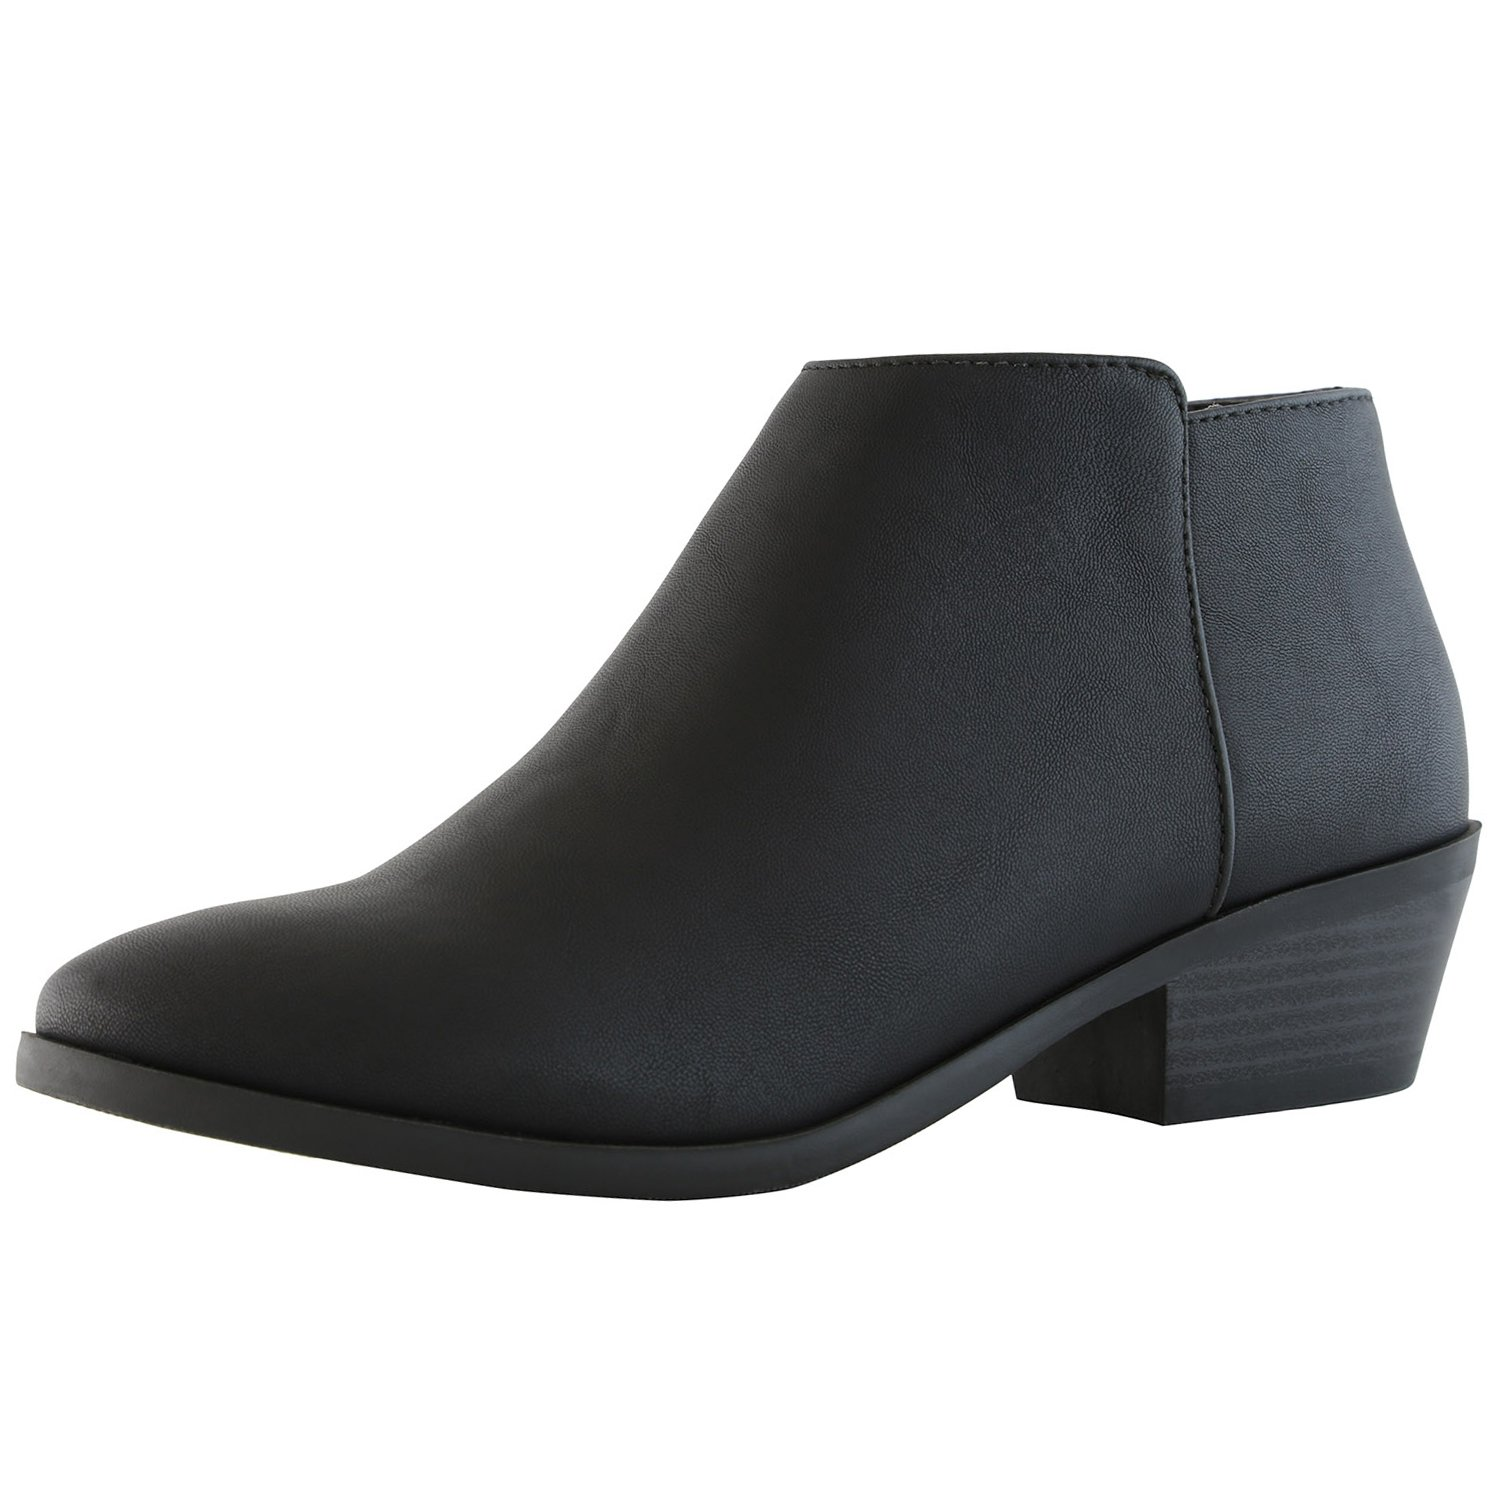 DailyShoes Women's Western Cowboy Bootie - Ultra Comfortable and Soft Lining Slip on Low Heel Cow Closed Pointed Toe Boot - Chunky Heel Stylish Ankle Boots for Any Occasion, Black PU, 5 B(M) US